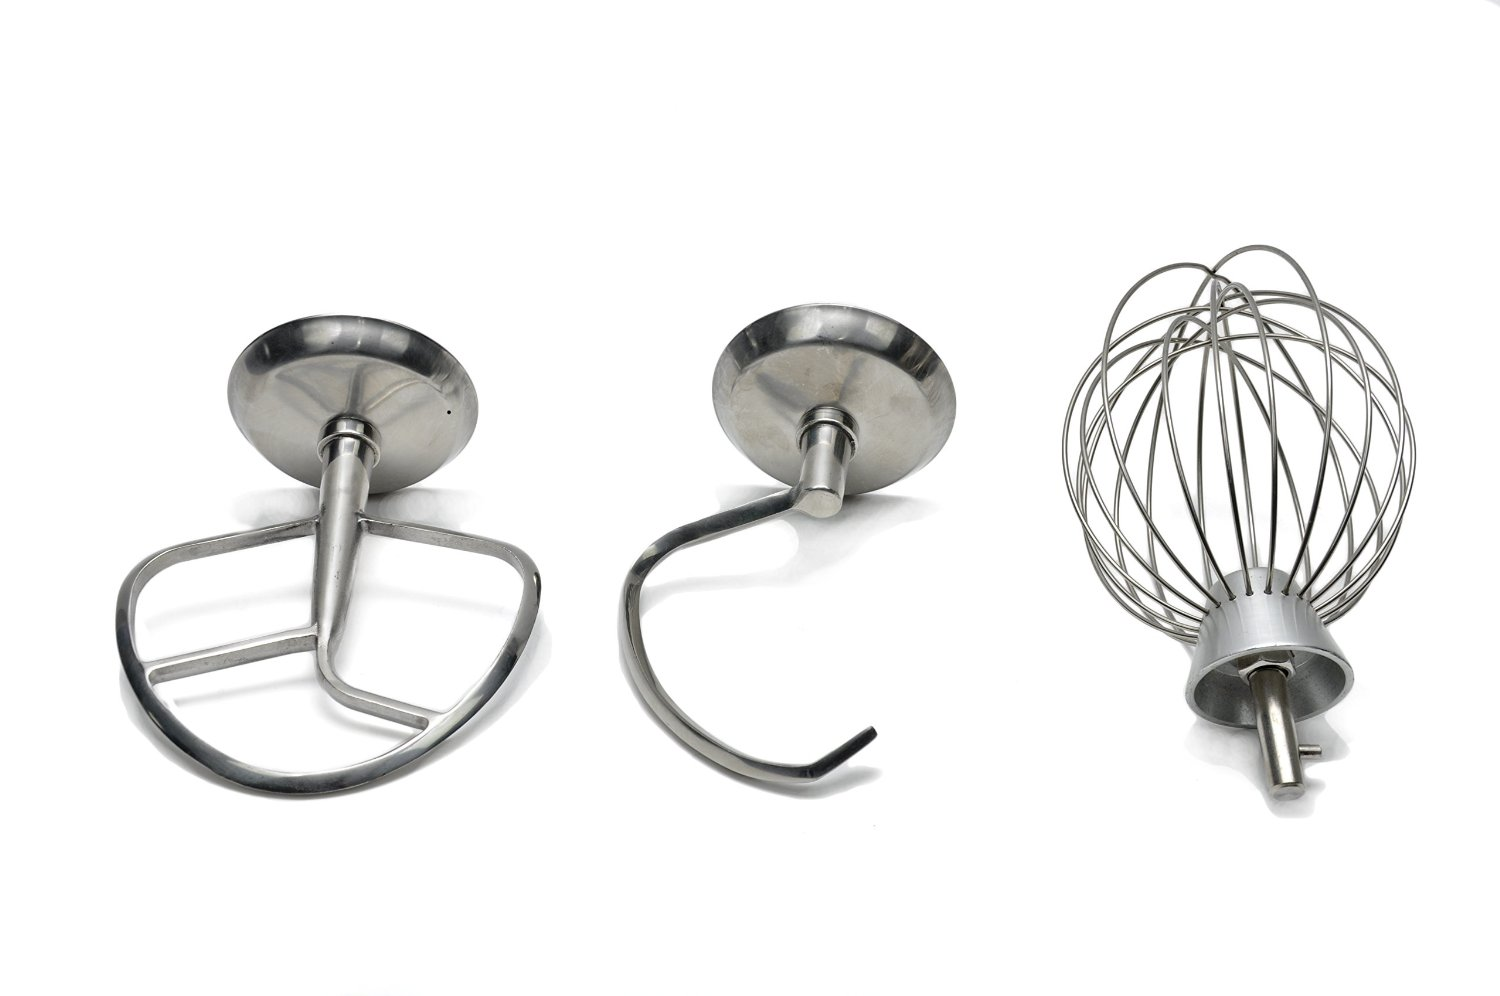 dough hook, flat beater and wire whip